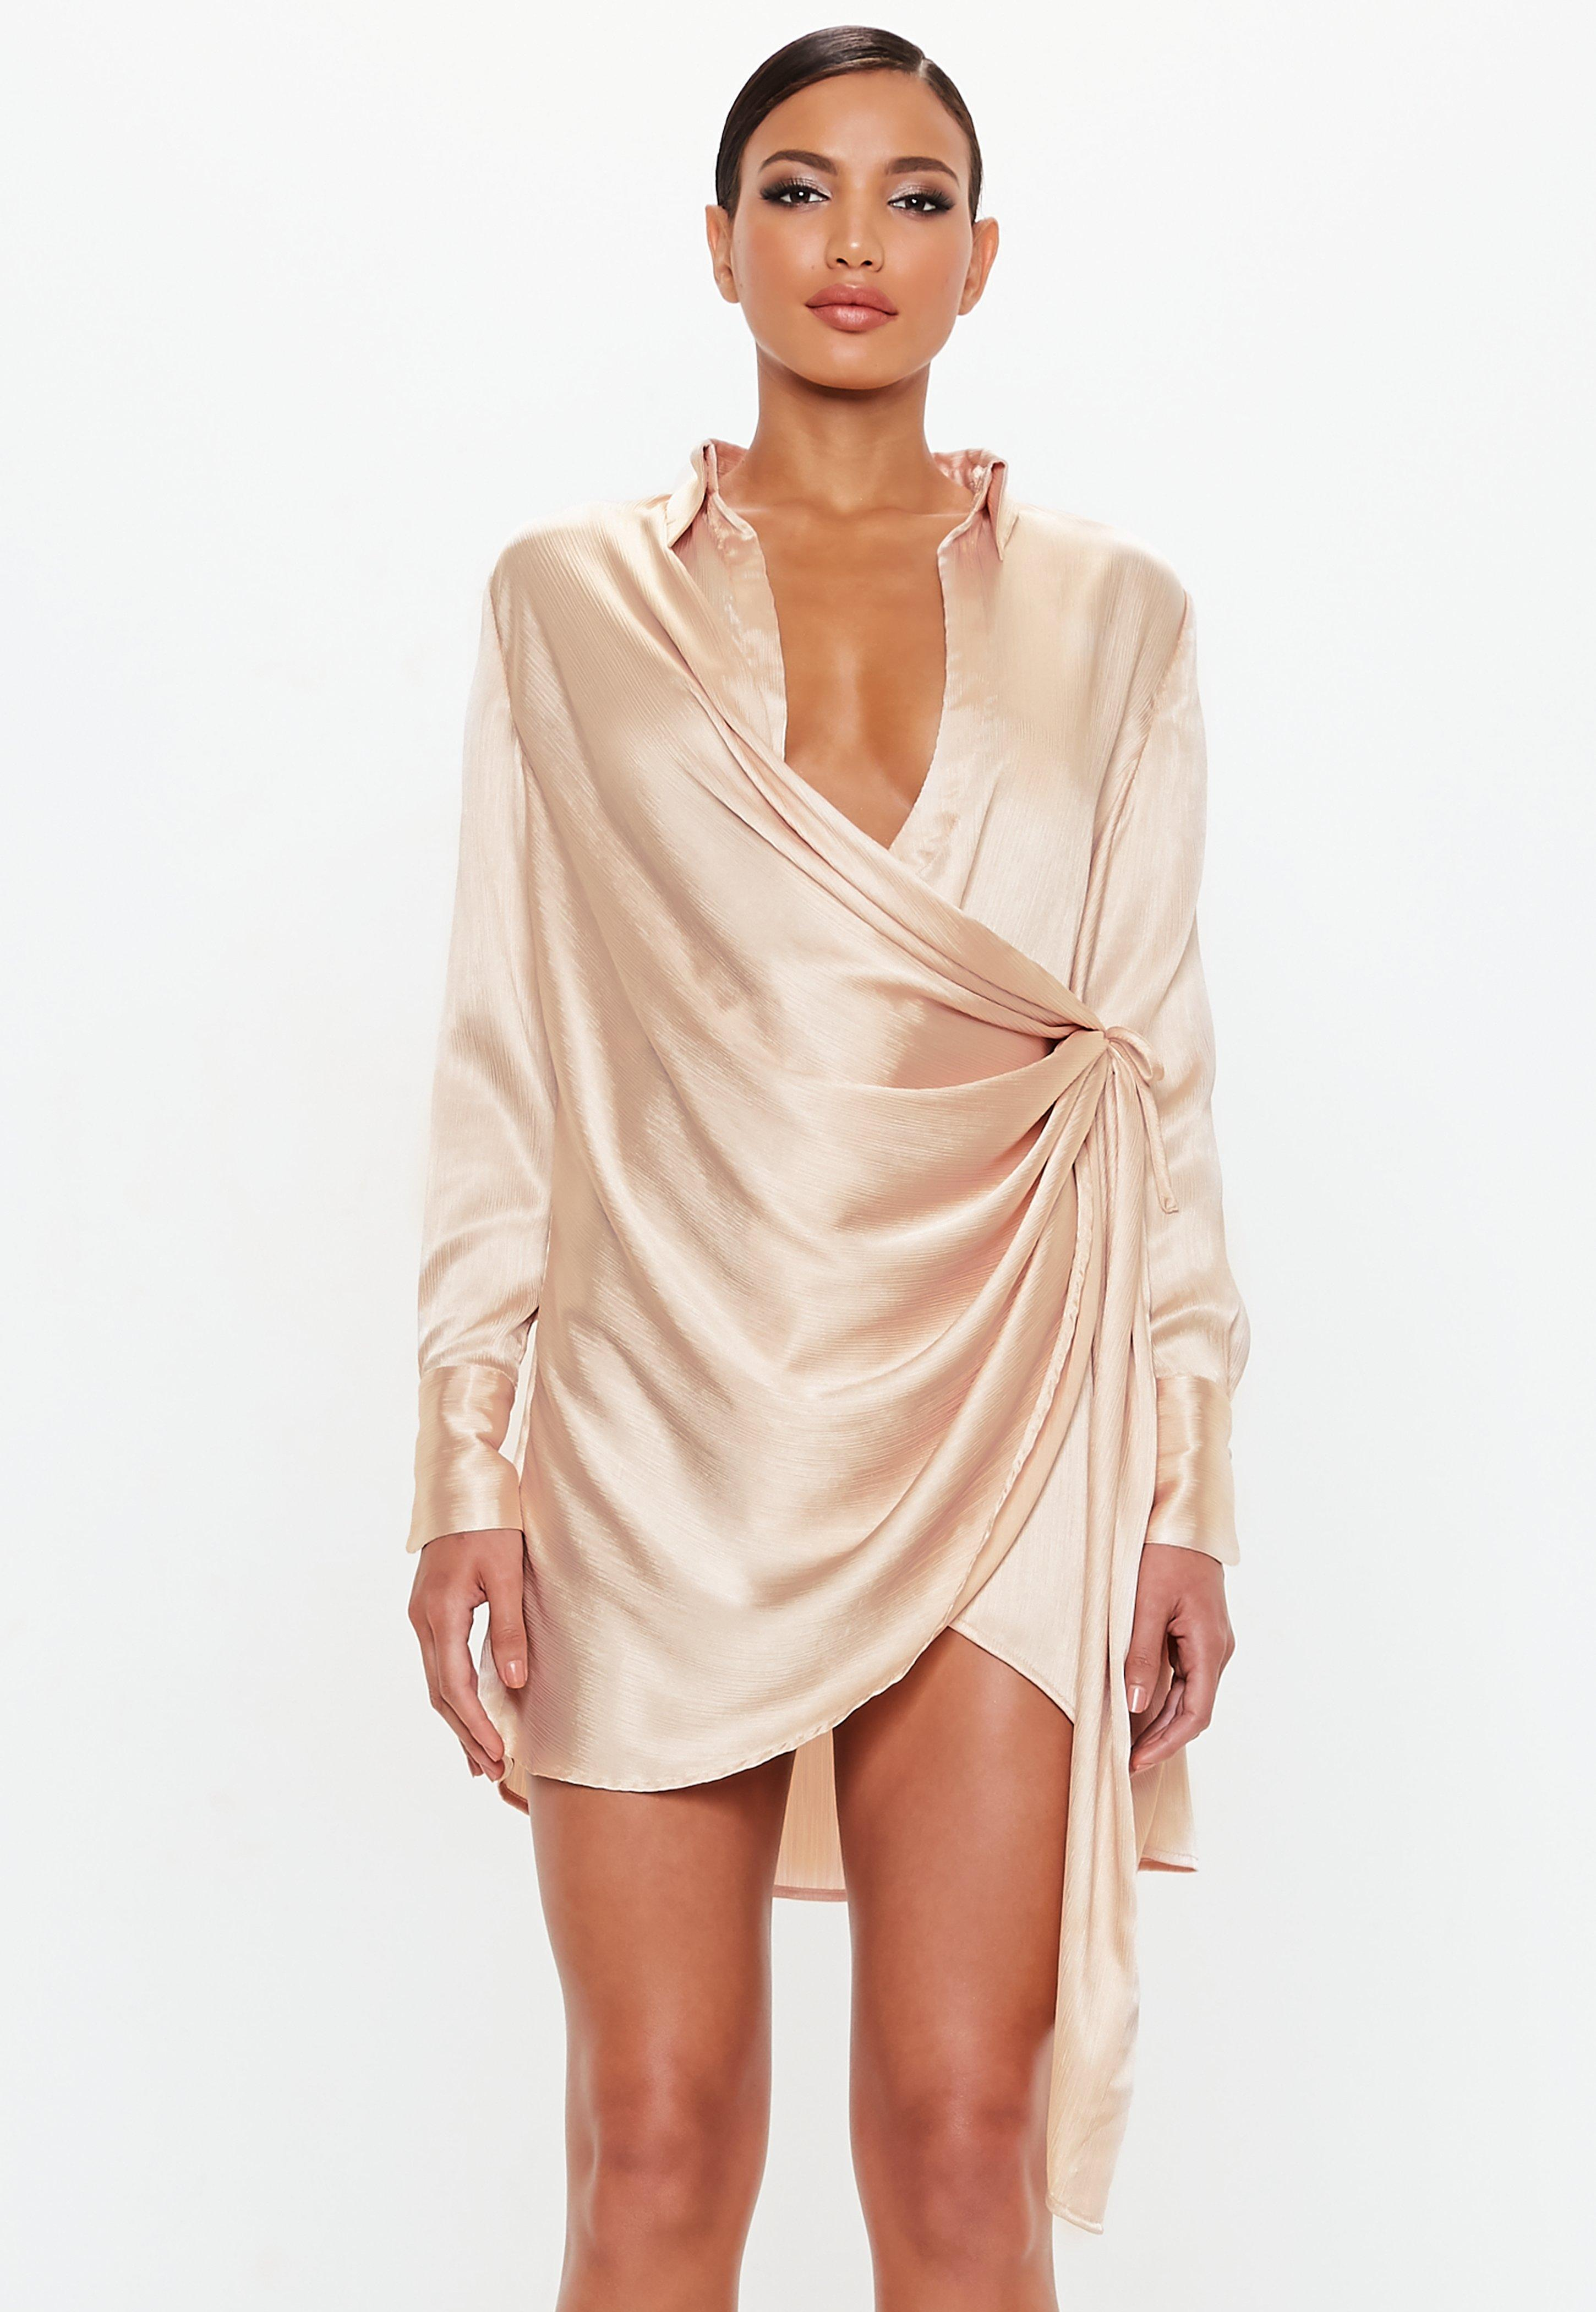 New Years Eve Dresses and NYE Party Outfits | Missguided